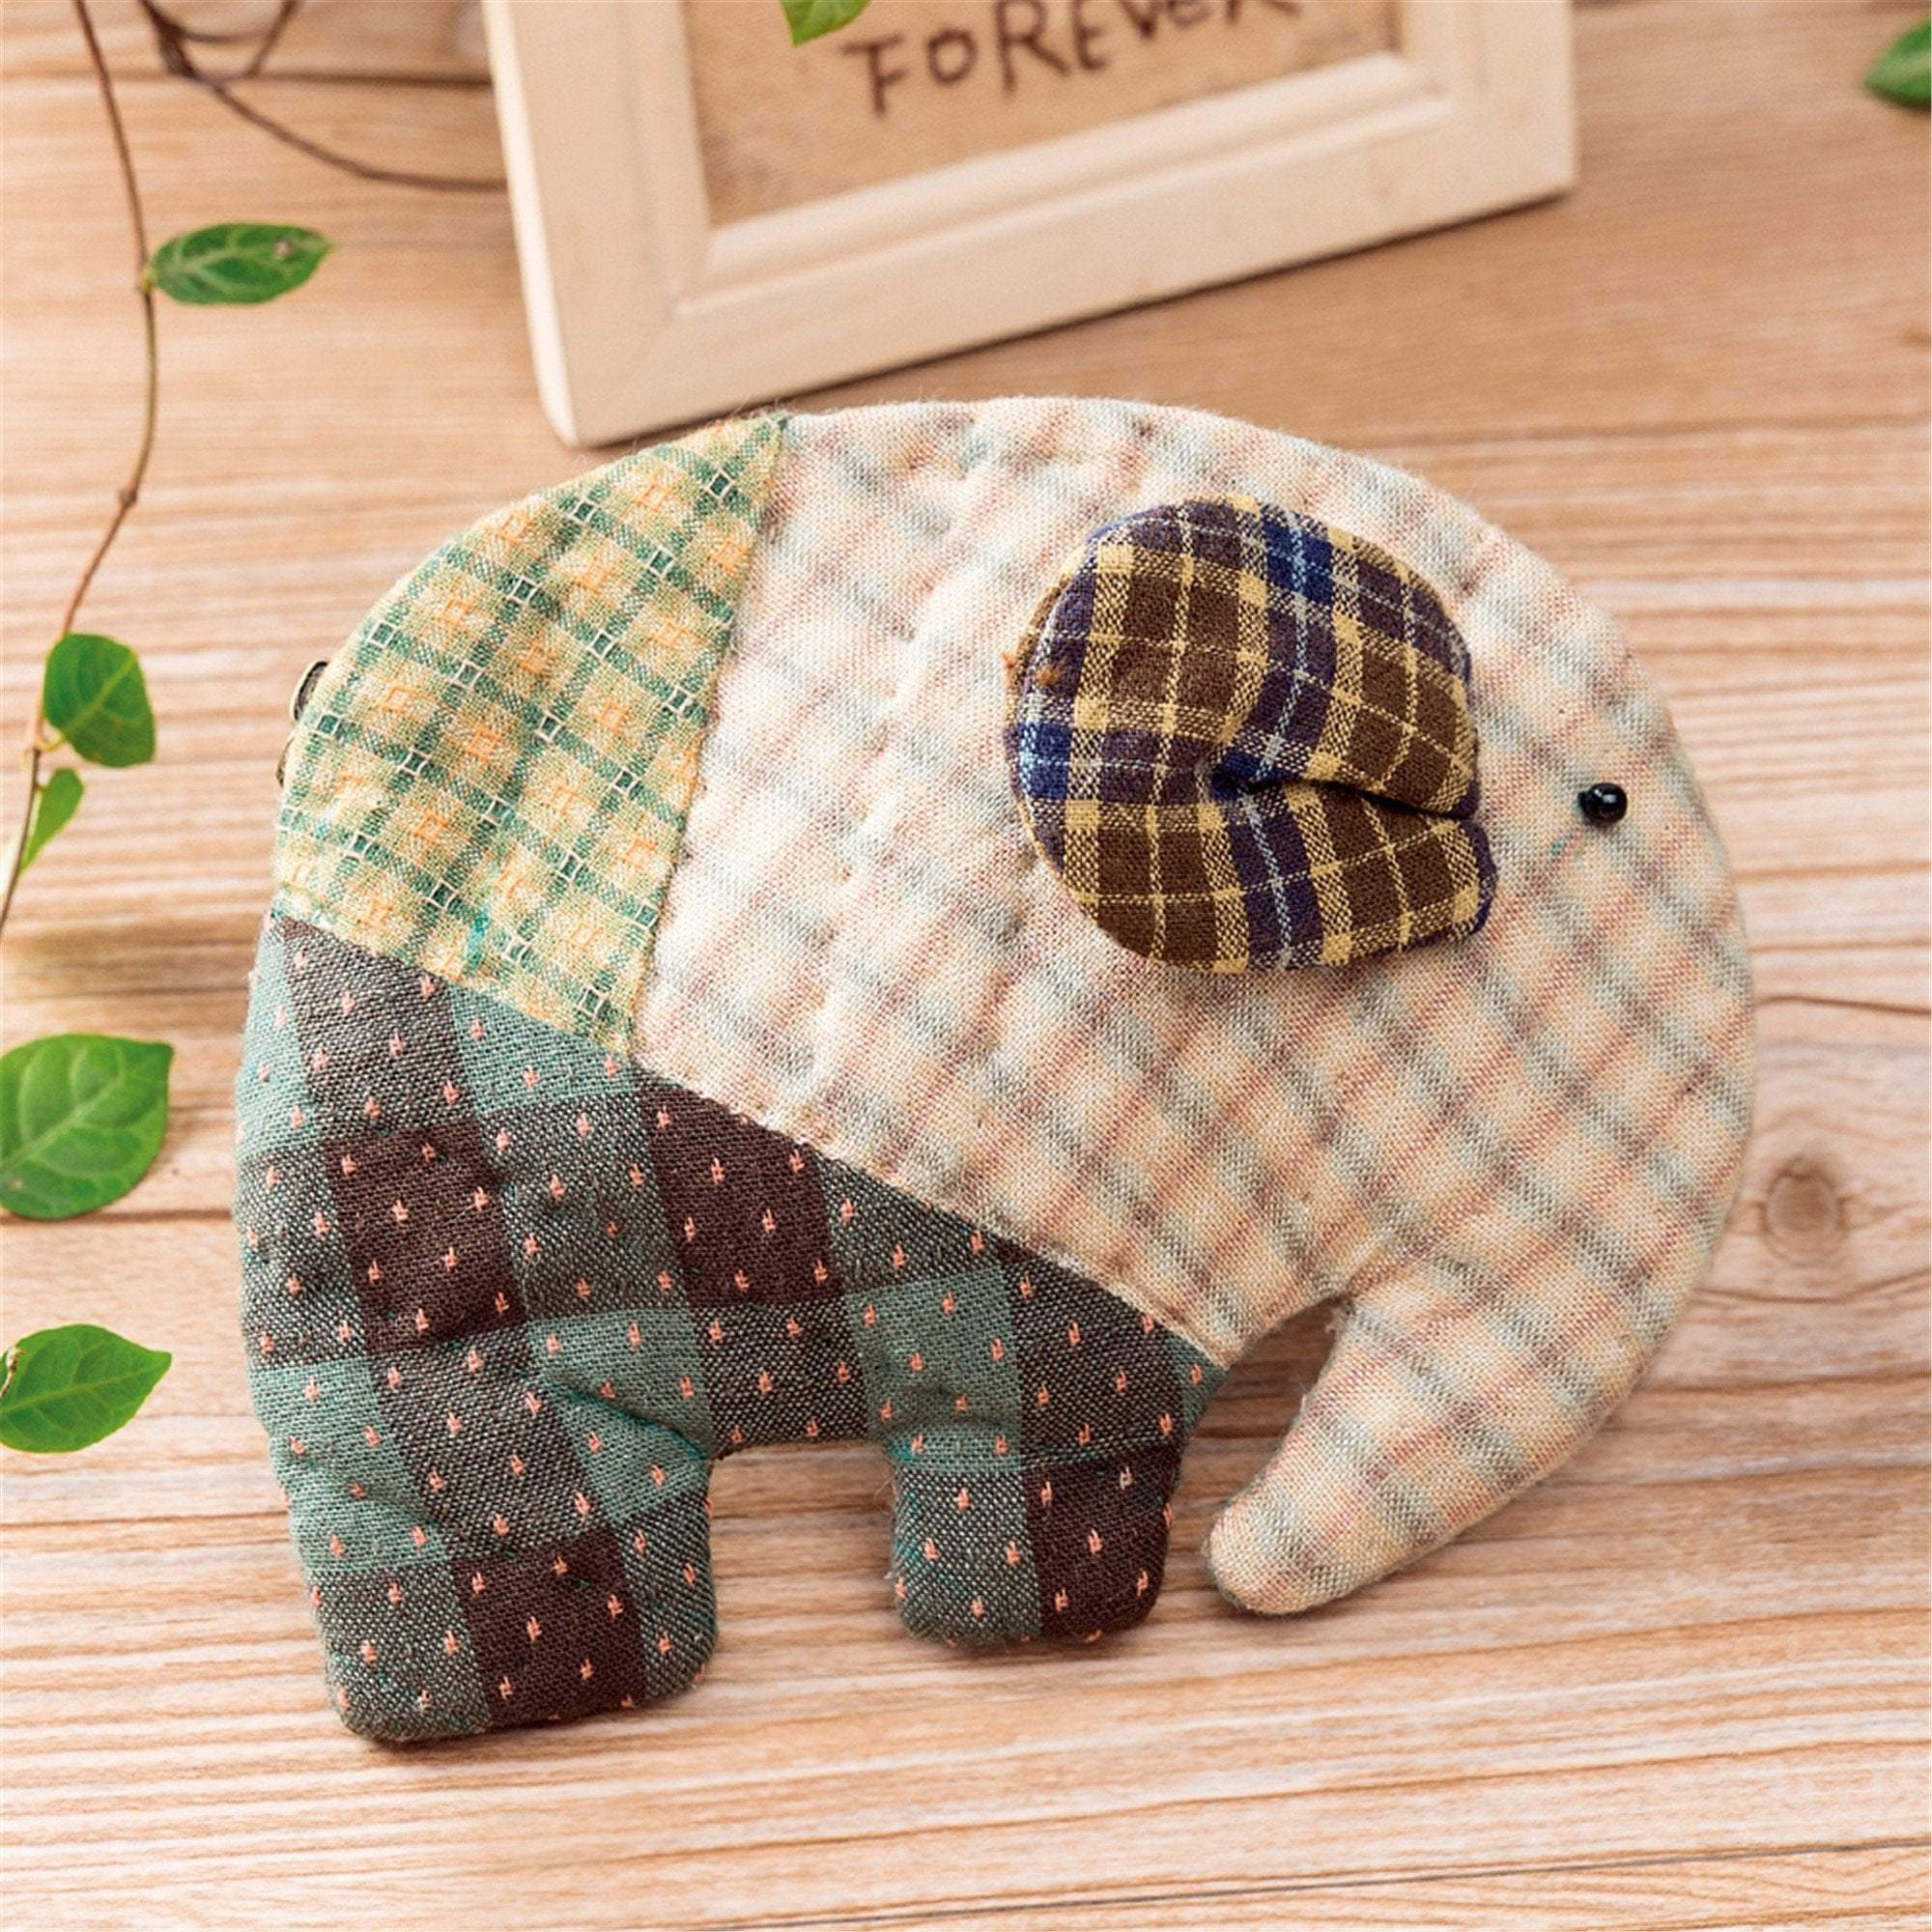 Coin Purse Making Kits - Elephant Pattern 2 - Sewing material kit - Oh My Crafts